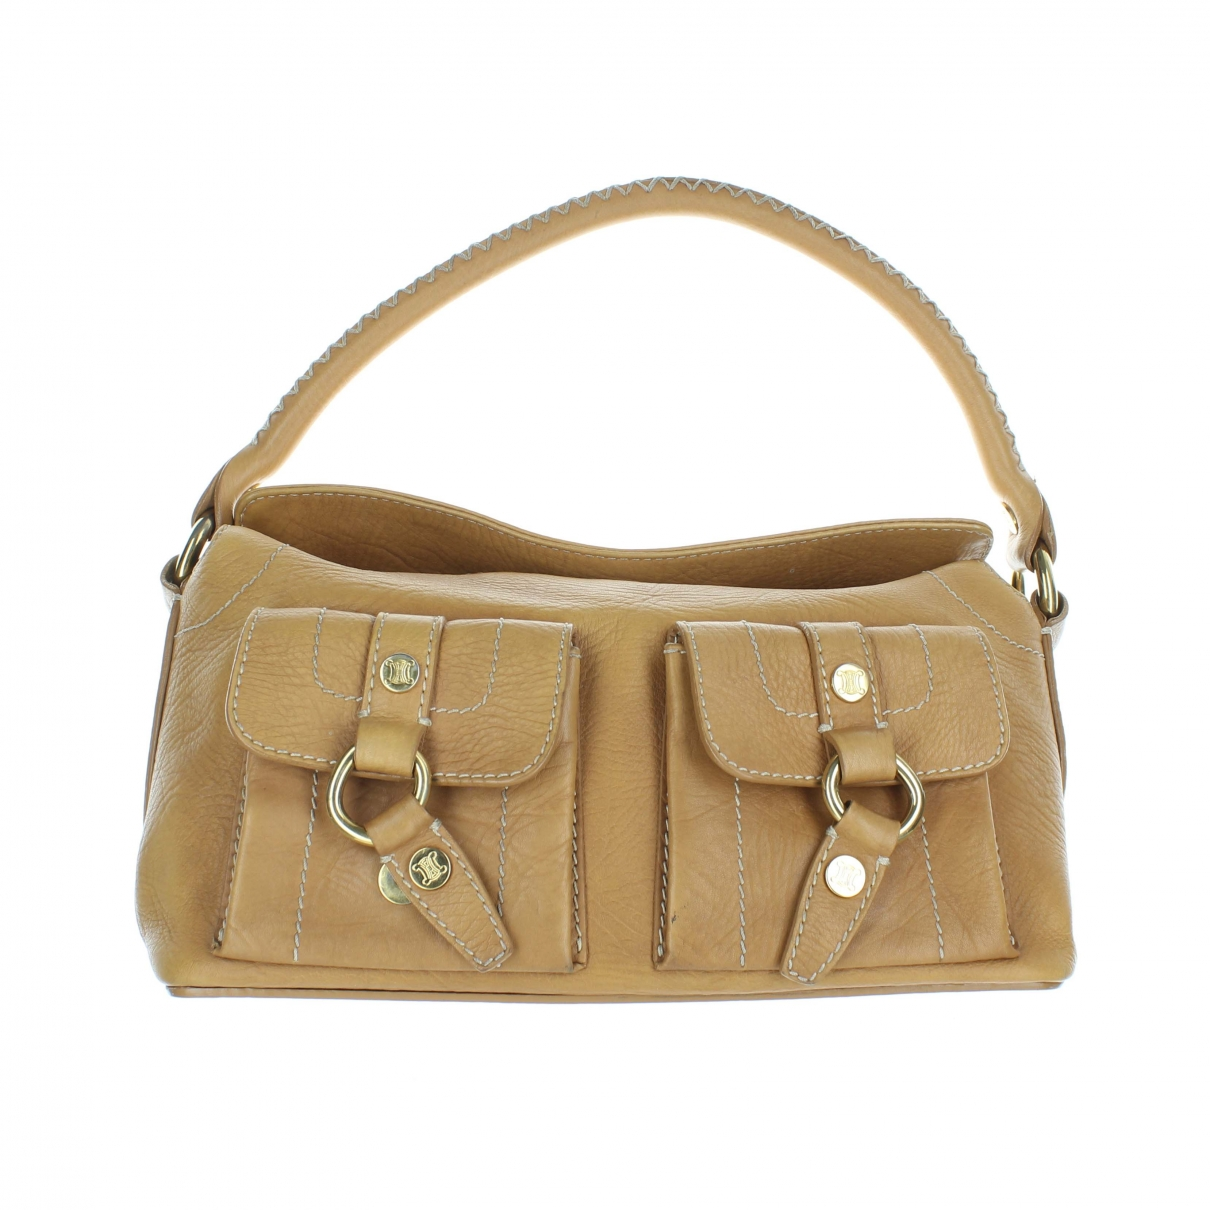 Celine \N Camel Leather handbag for Women \N